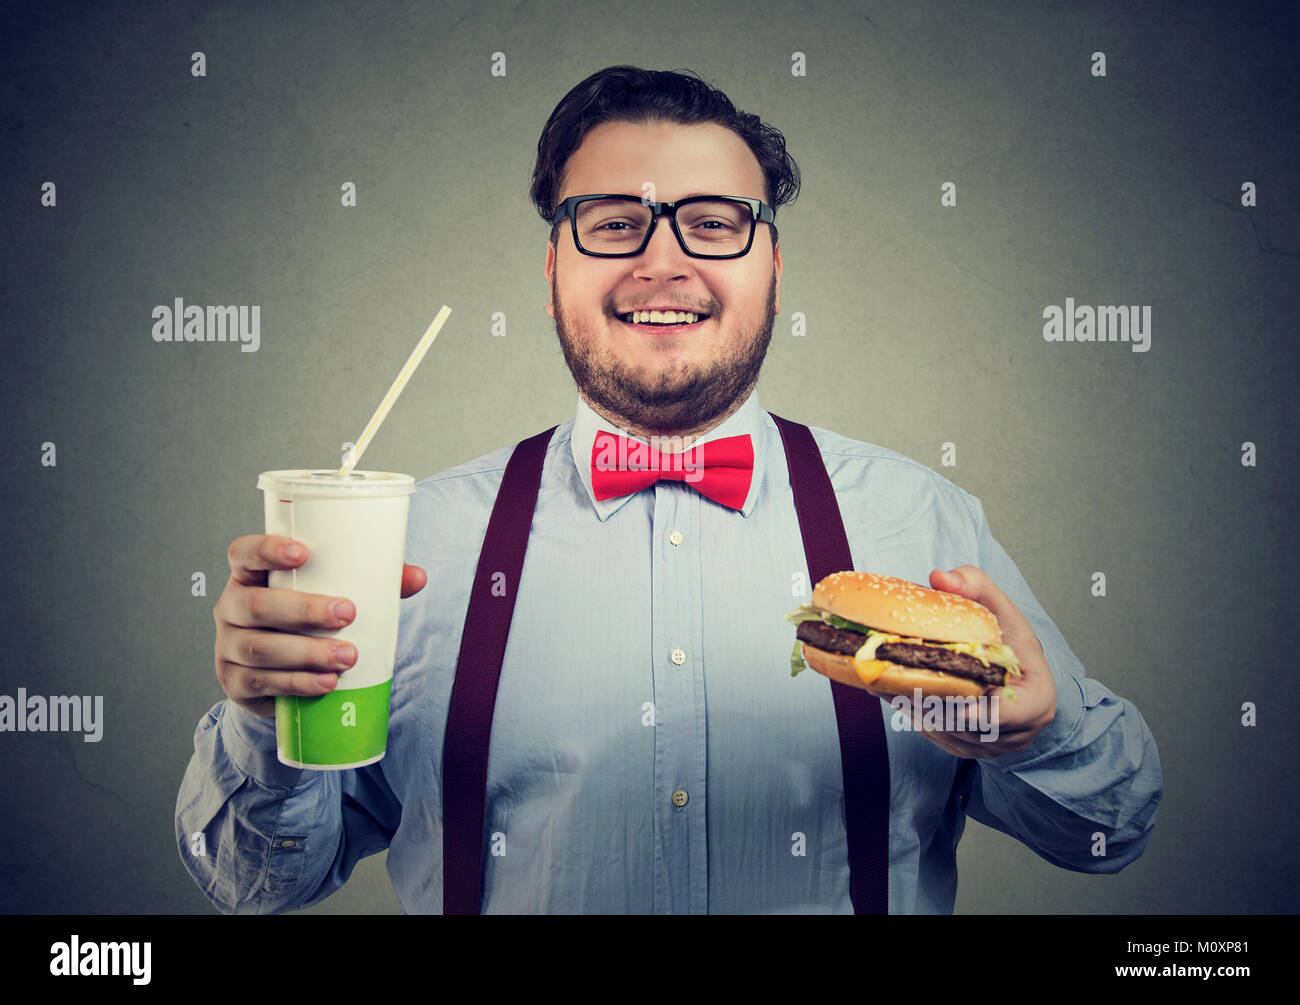 Young happy man looking excited while having burger and soda looking at camera. - Stock Image